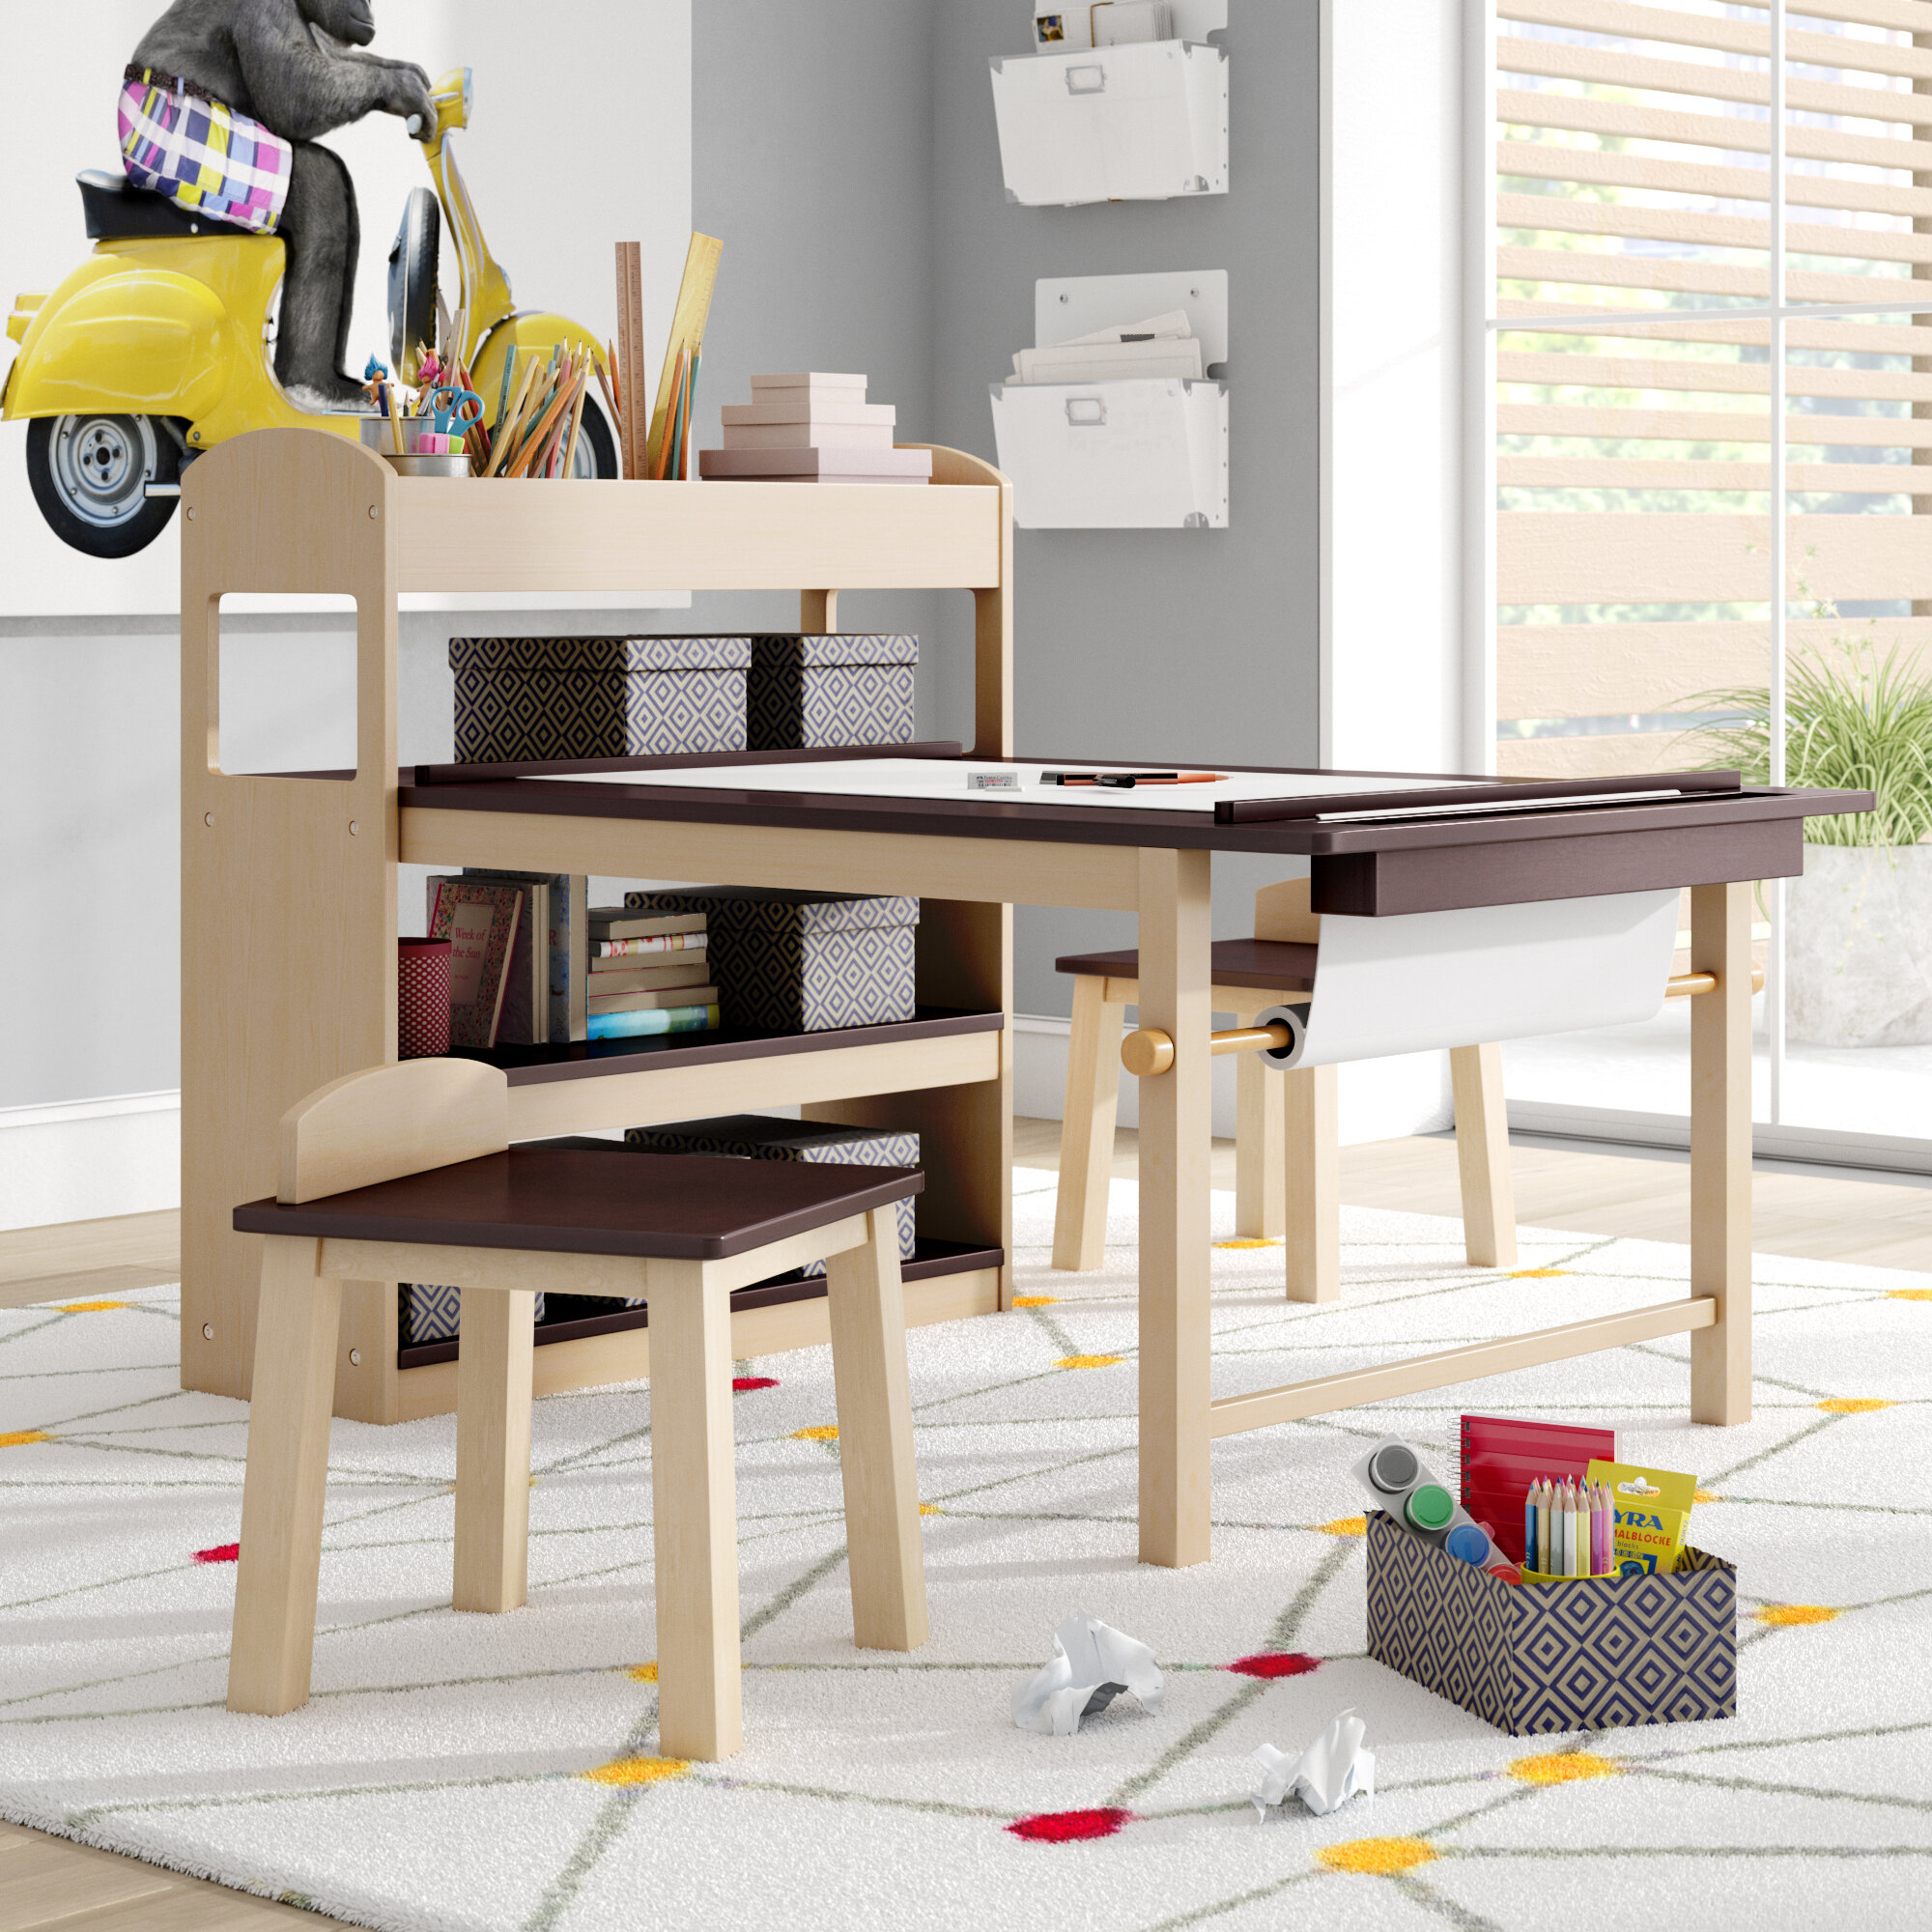 Viv Rae Emilio Kids 3 Piece Arts And Crafts Table And Chair Set